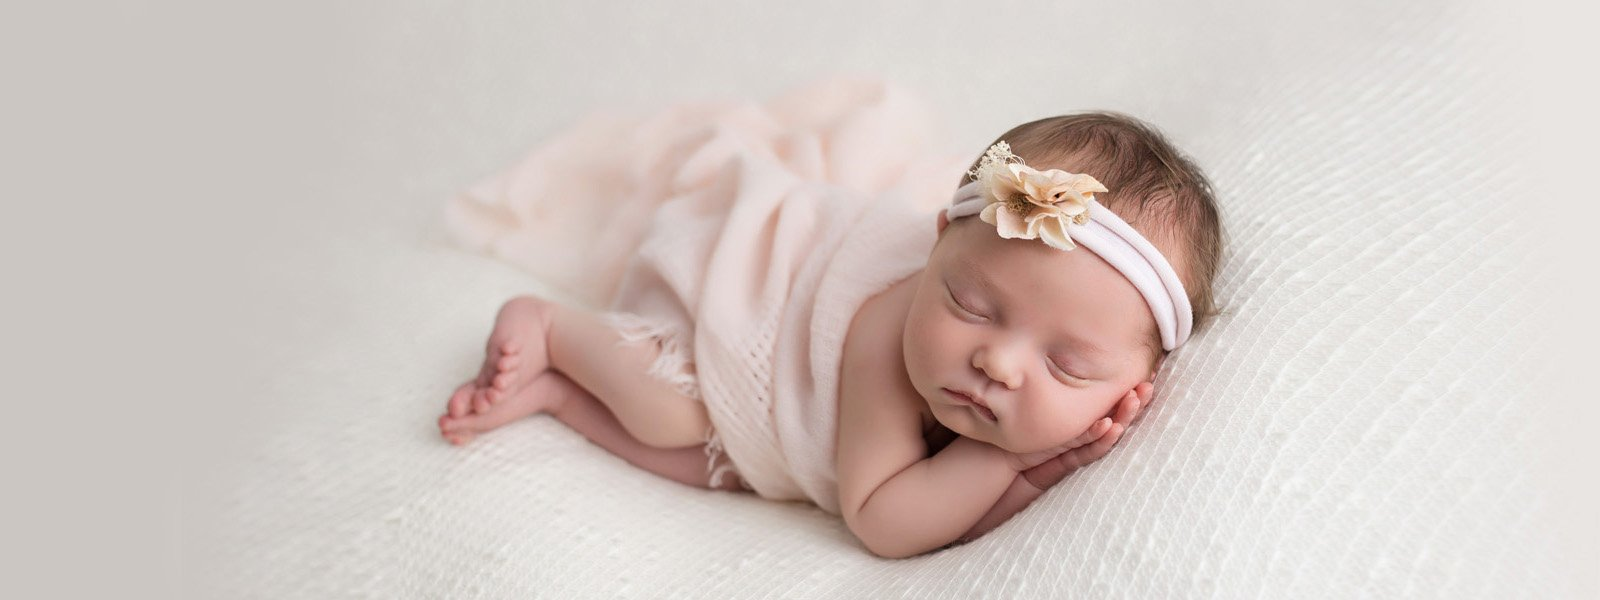 newborn-baby-girl-hudson-ohio-crop